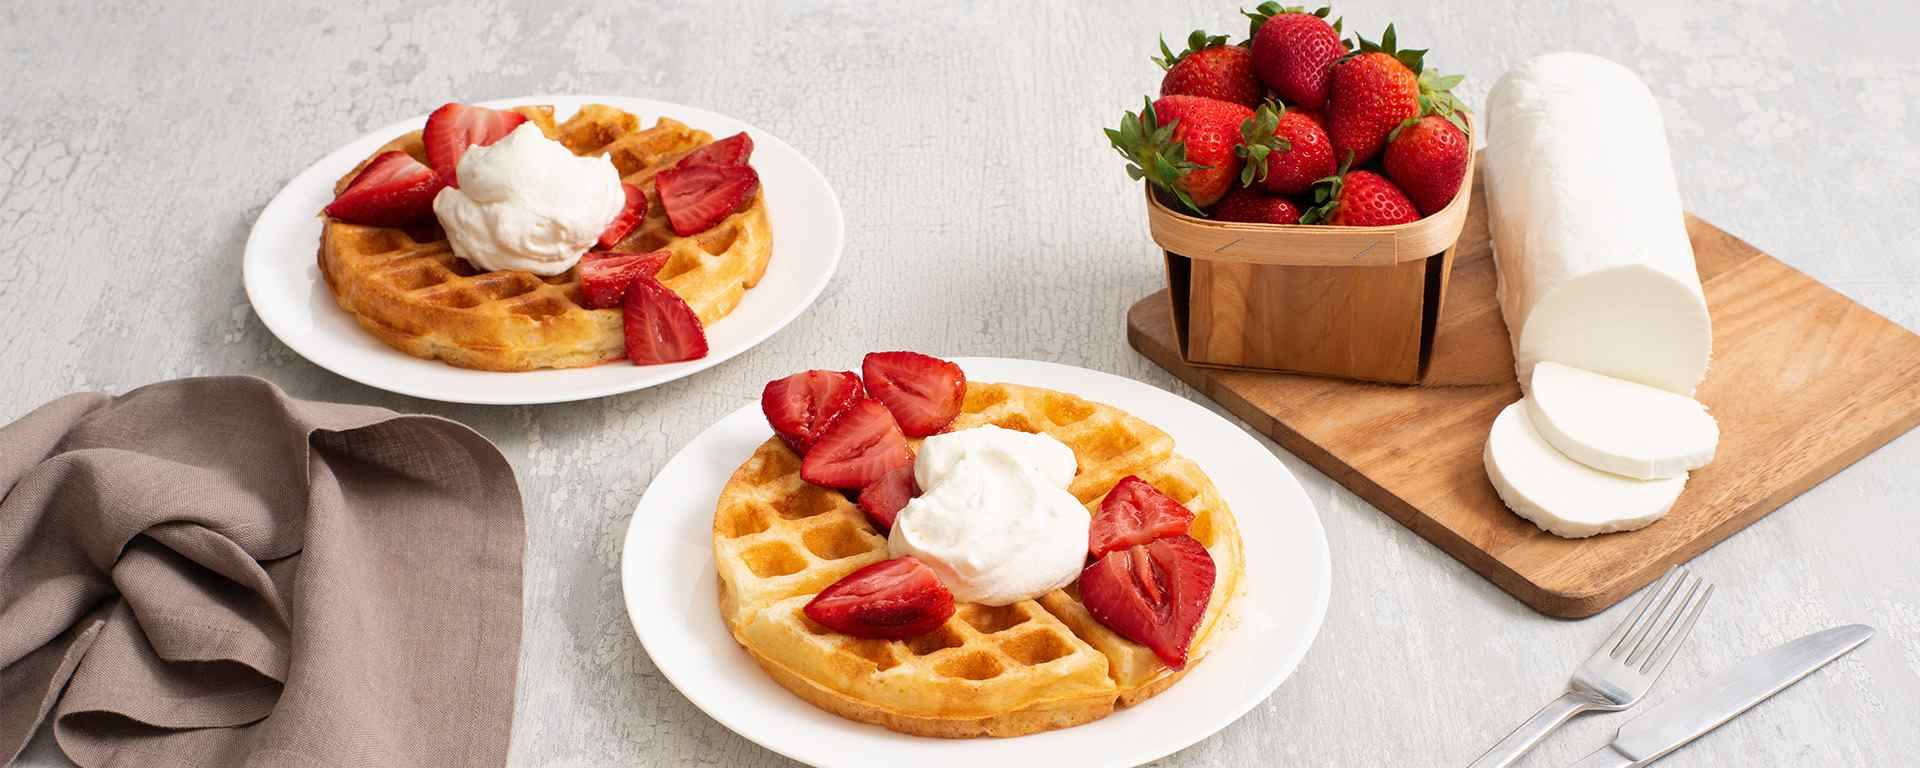 Photo for - Buttermilk Waffles with Balsamic Roasted Strawberries and Goat Cheese Whipped Cream